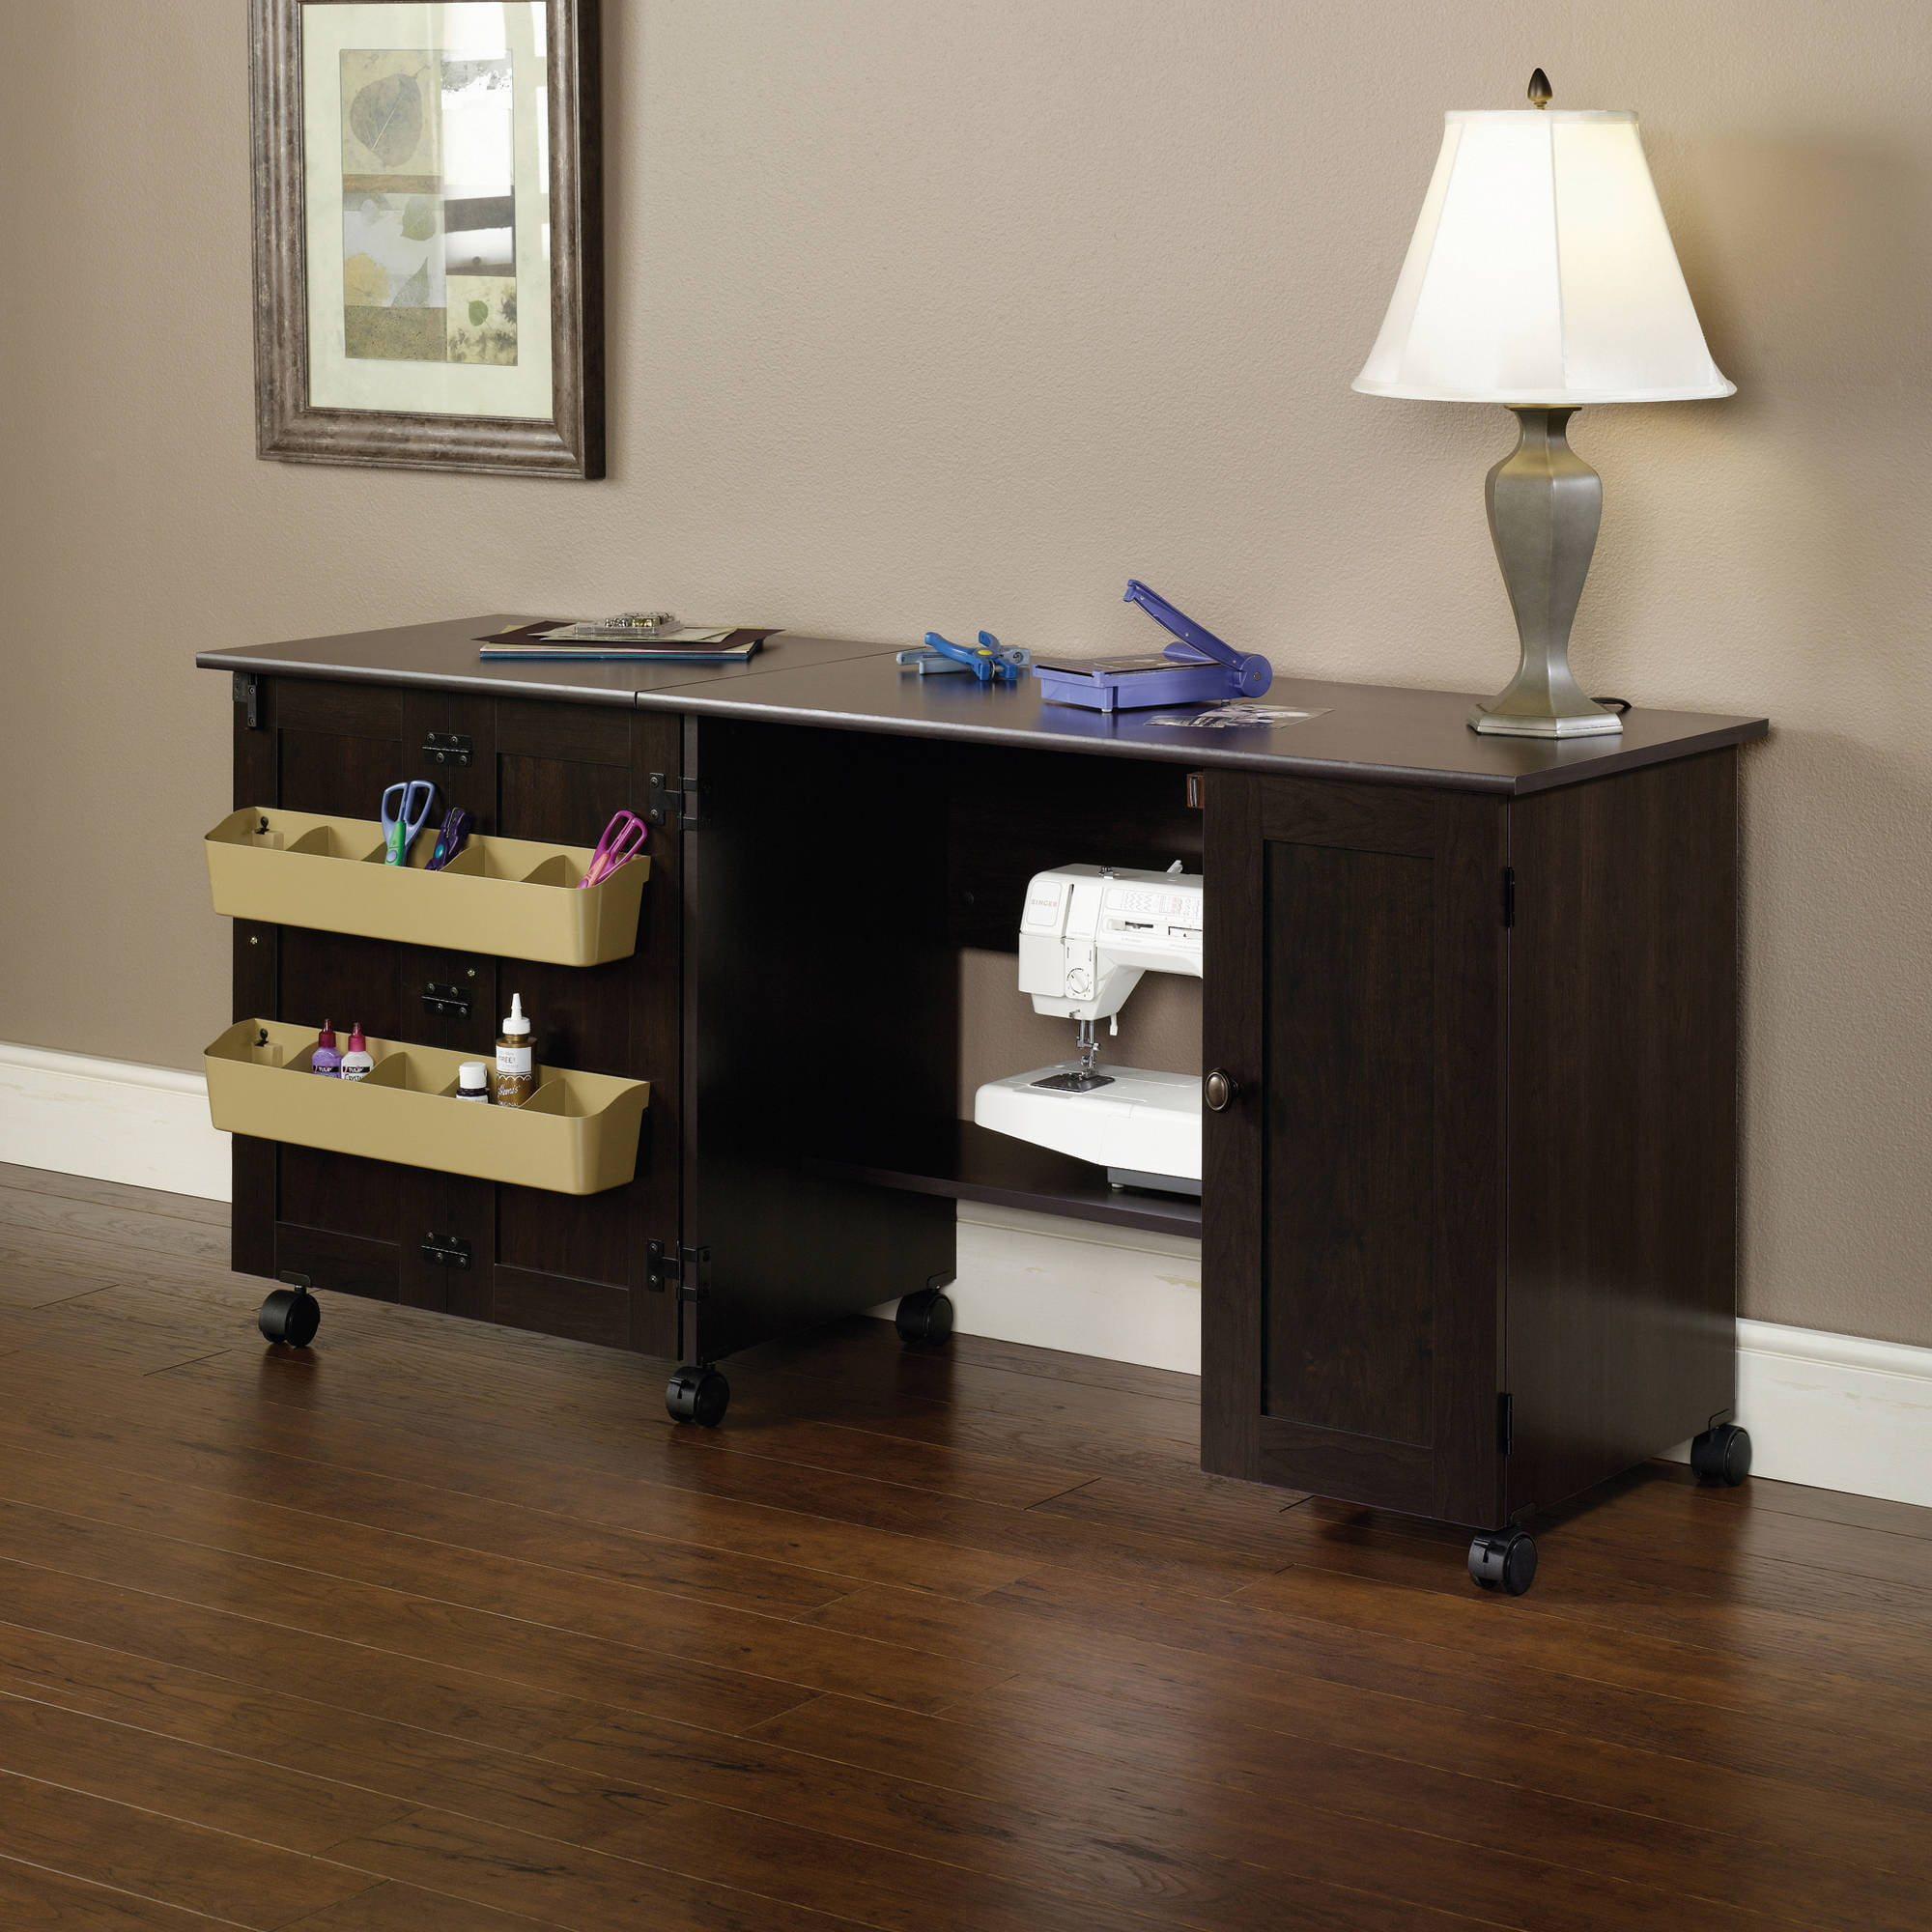 Sauder Sewing And Craft Table Cinnamon Cherry Finish Walmart Com Walmart Com